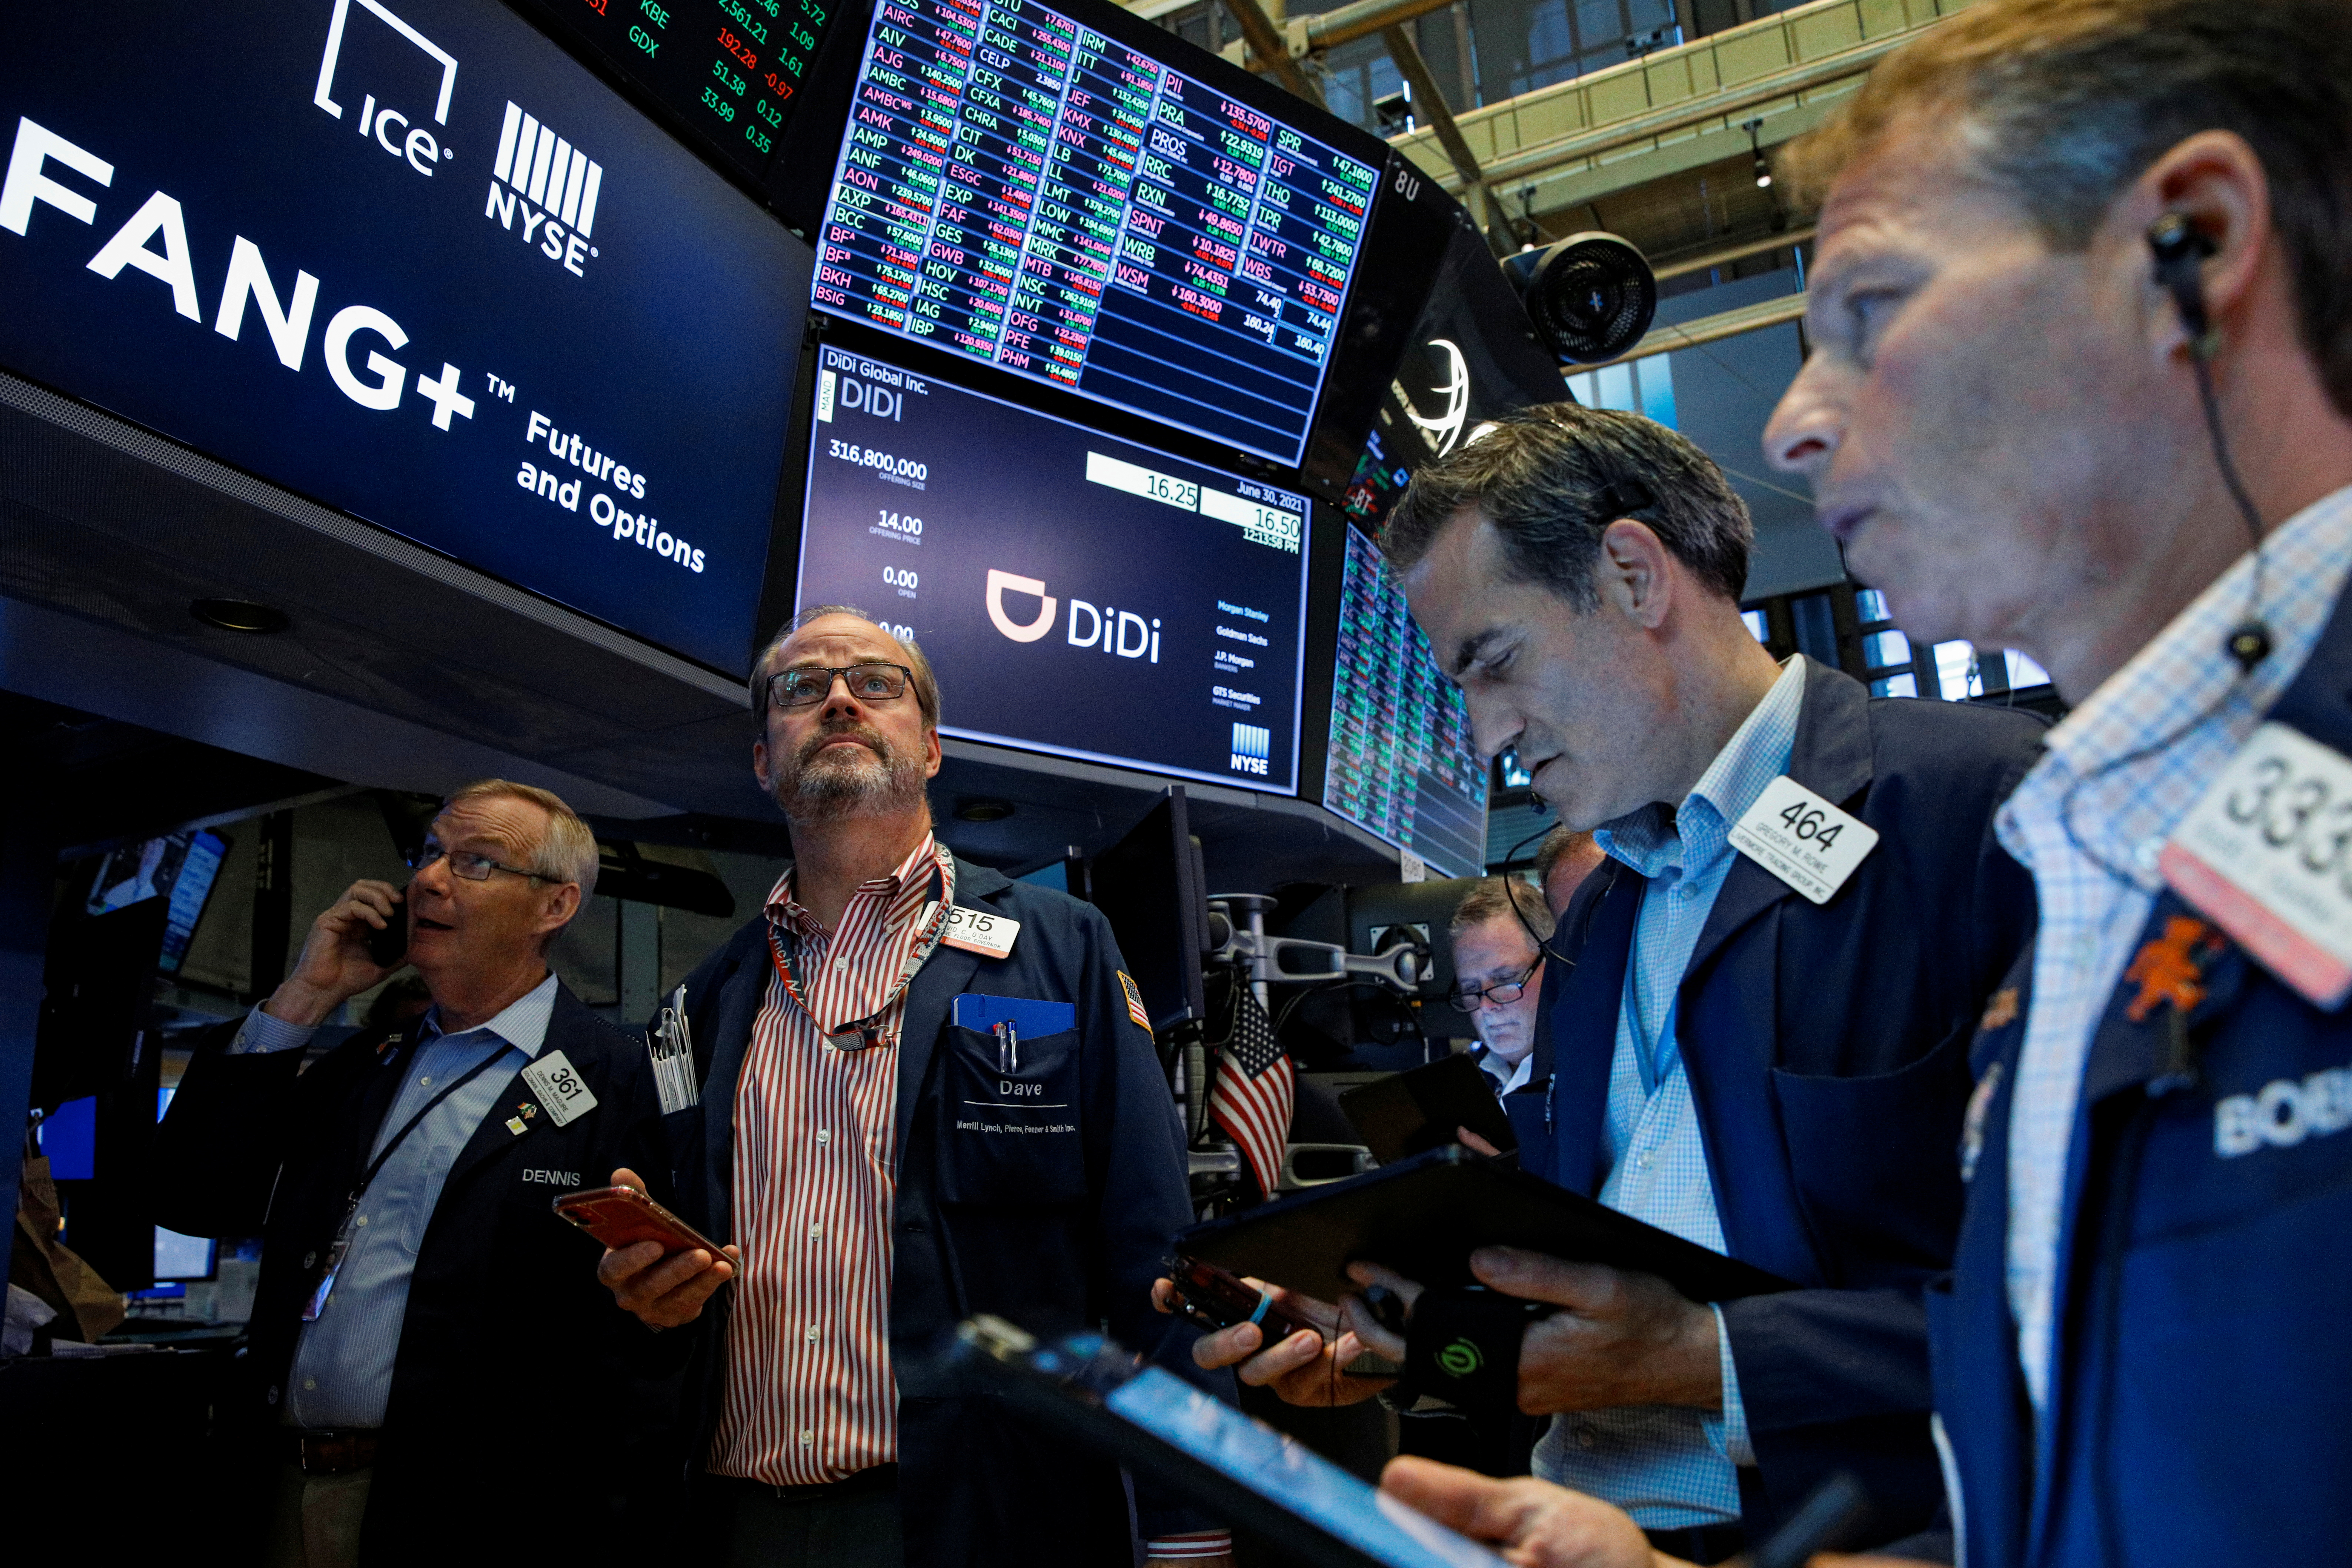 IPOs slow down globally in Q3 after frenetic 2021 start